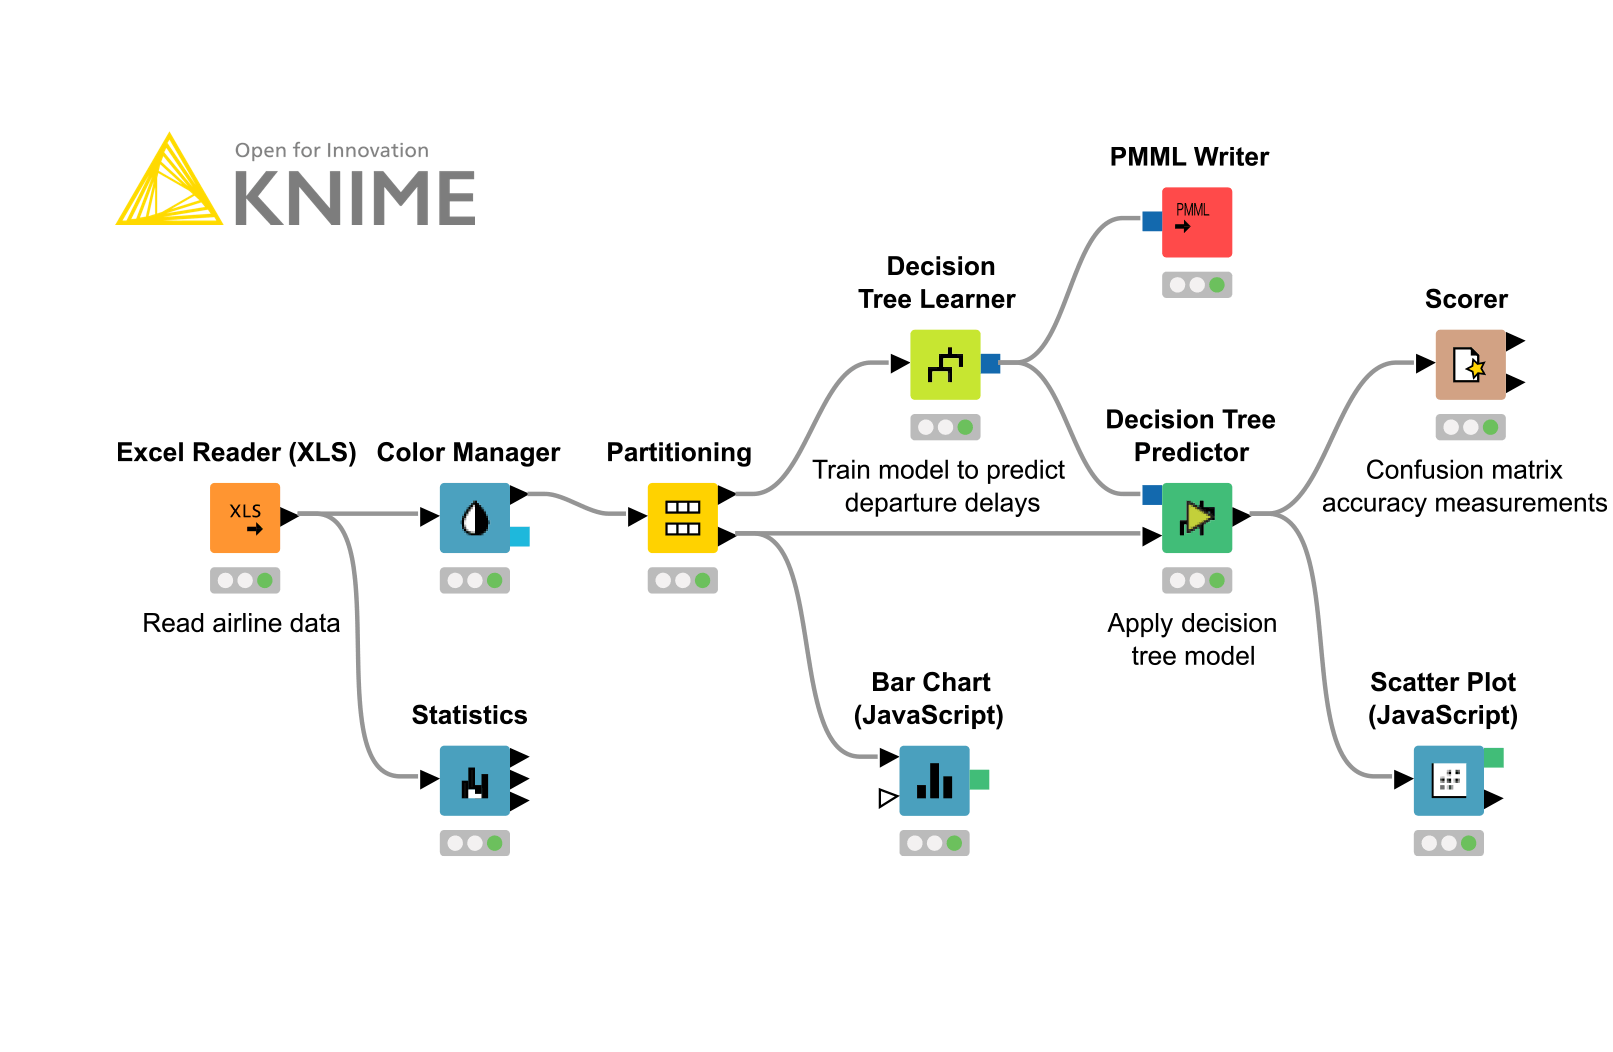 Course for KNIME Analytics Platform